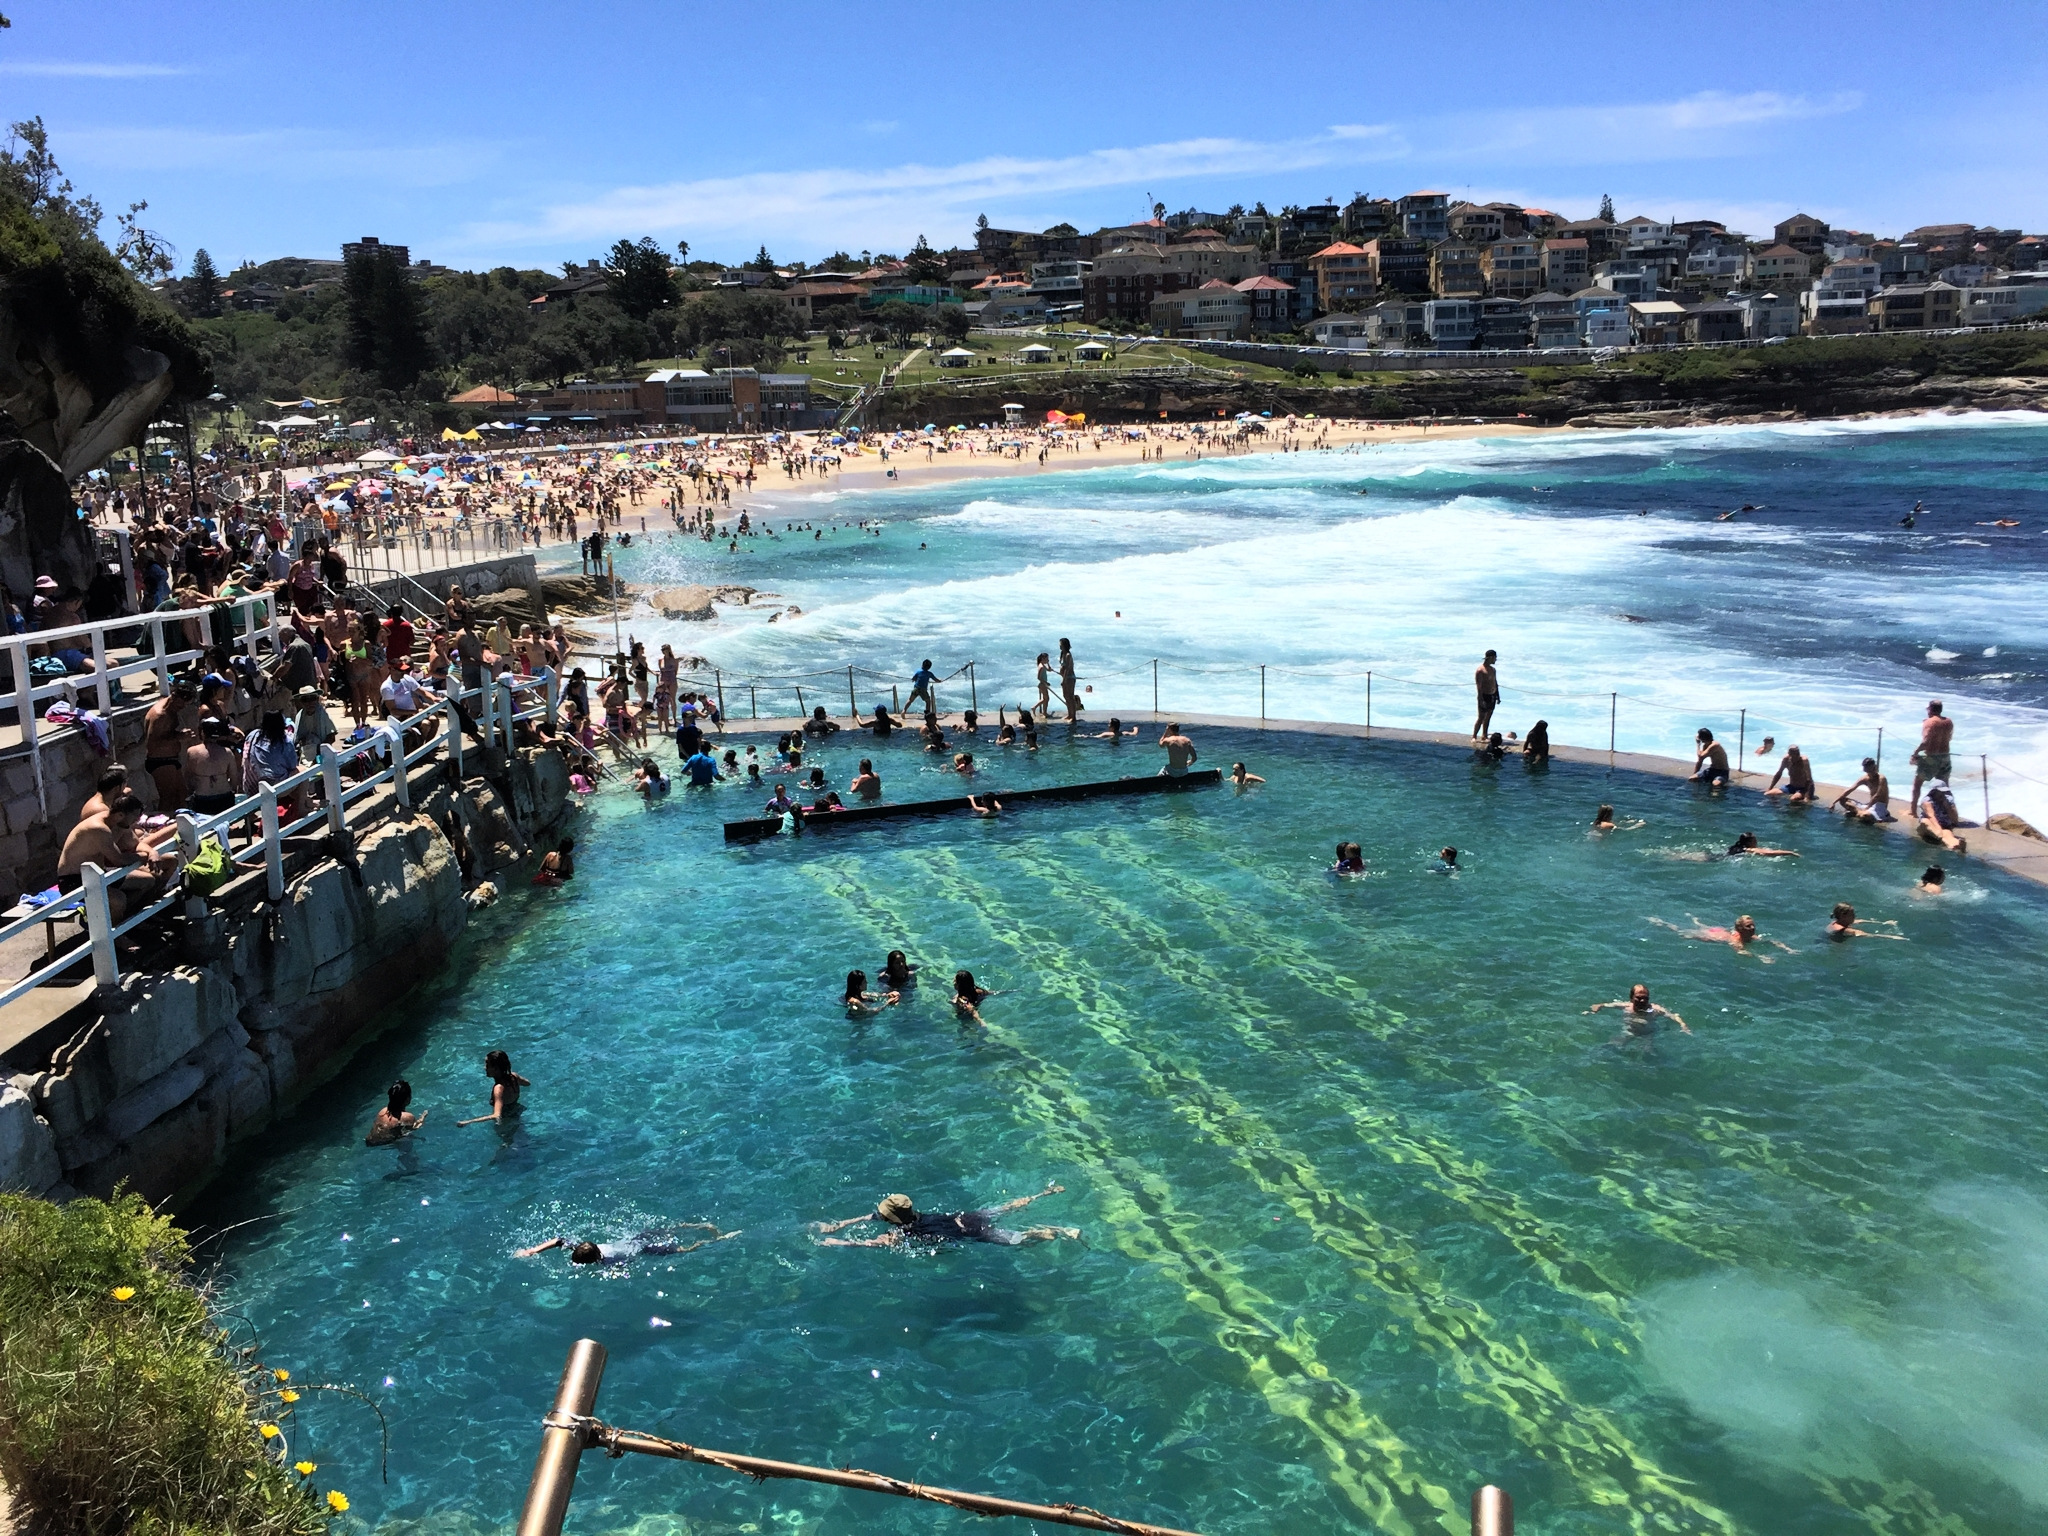 the rock pool at bronte beach in sydney, australia